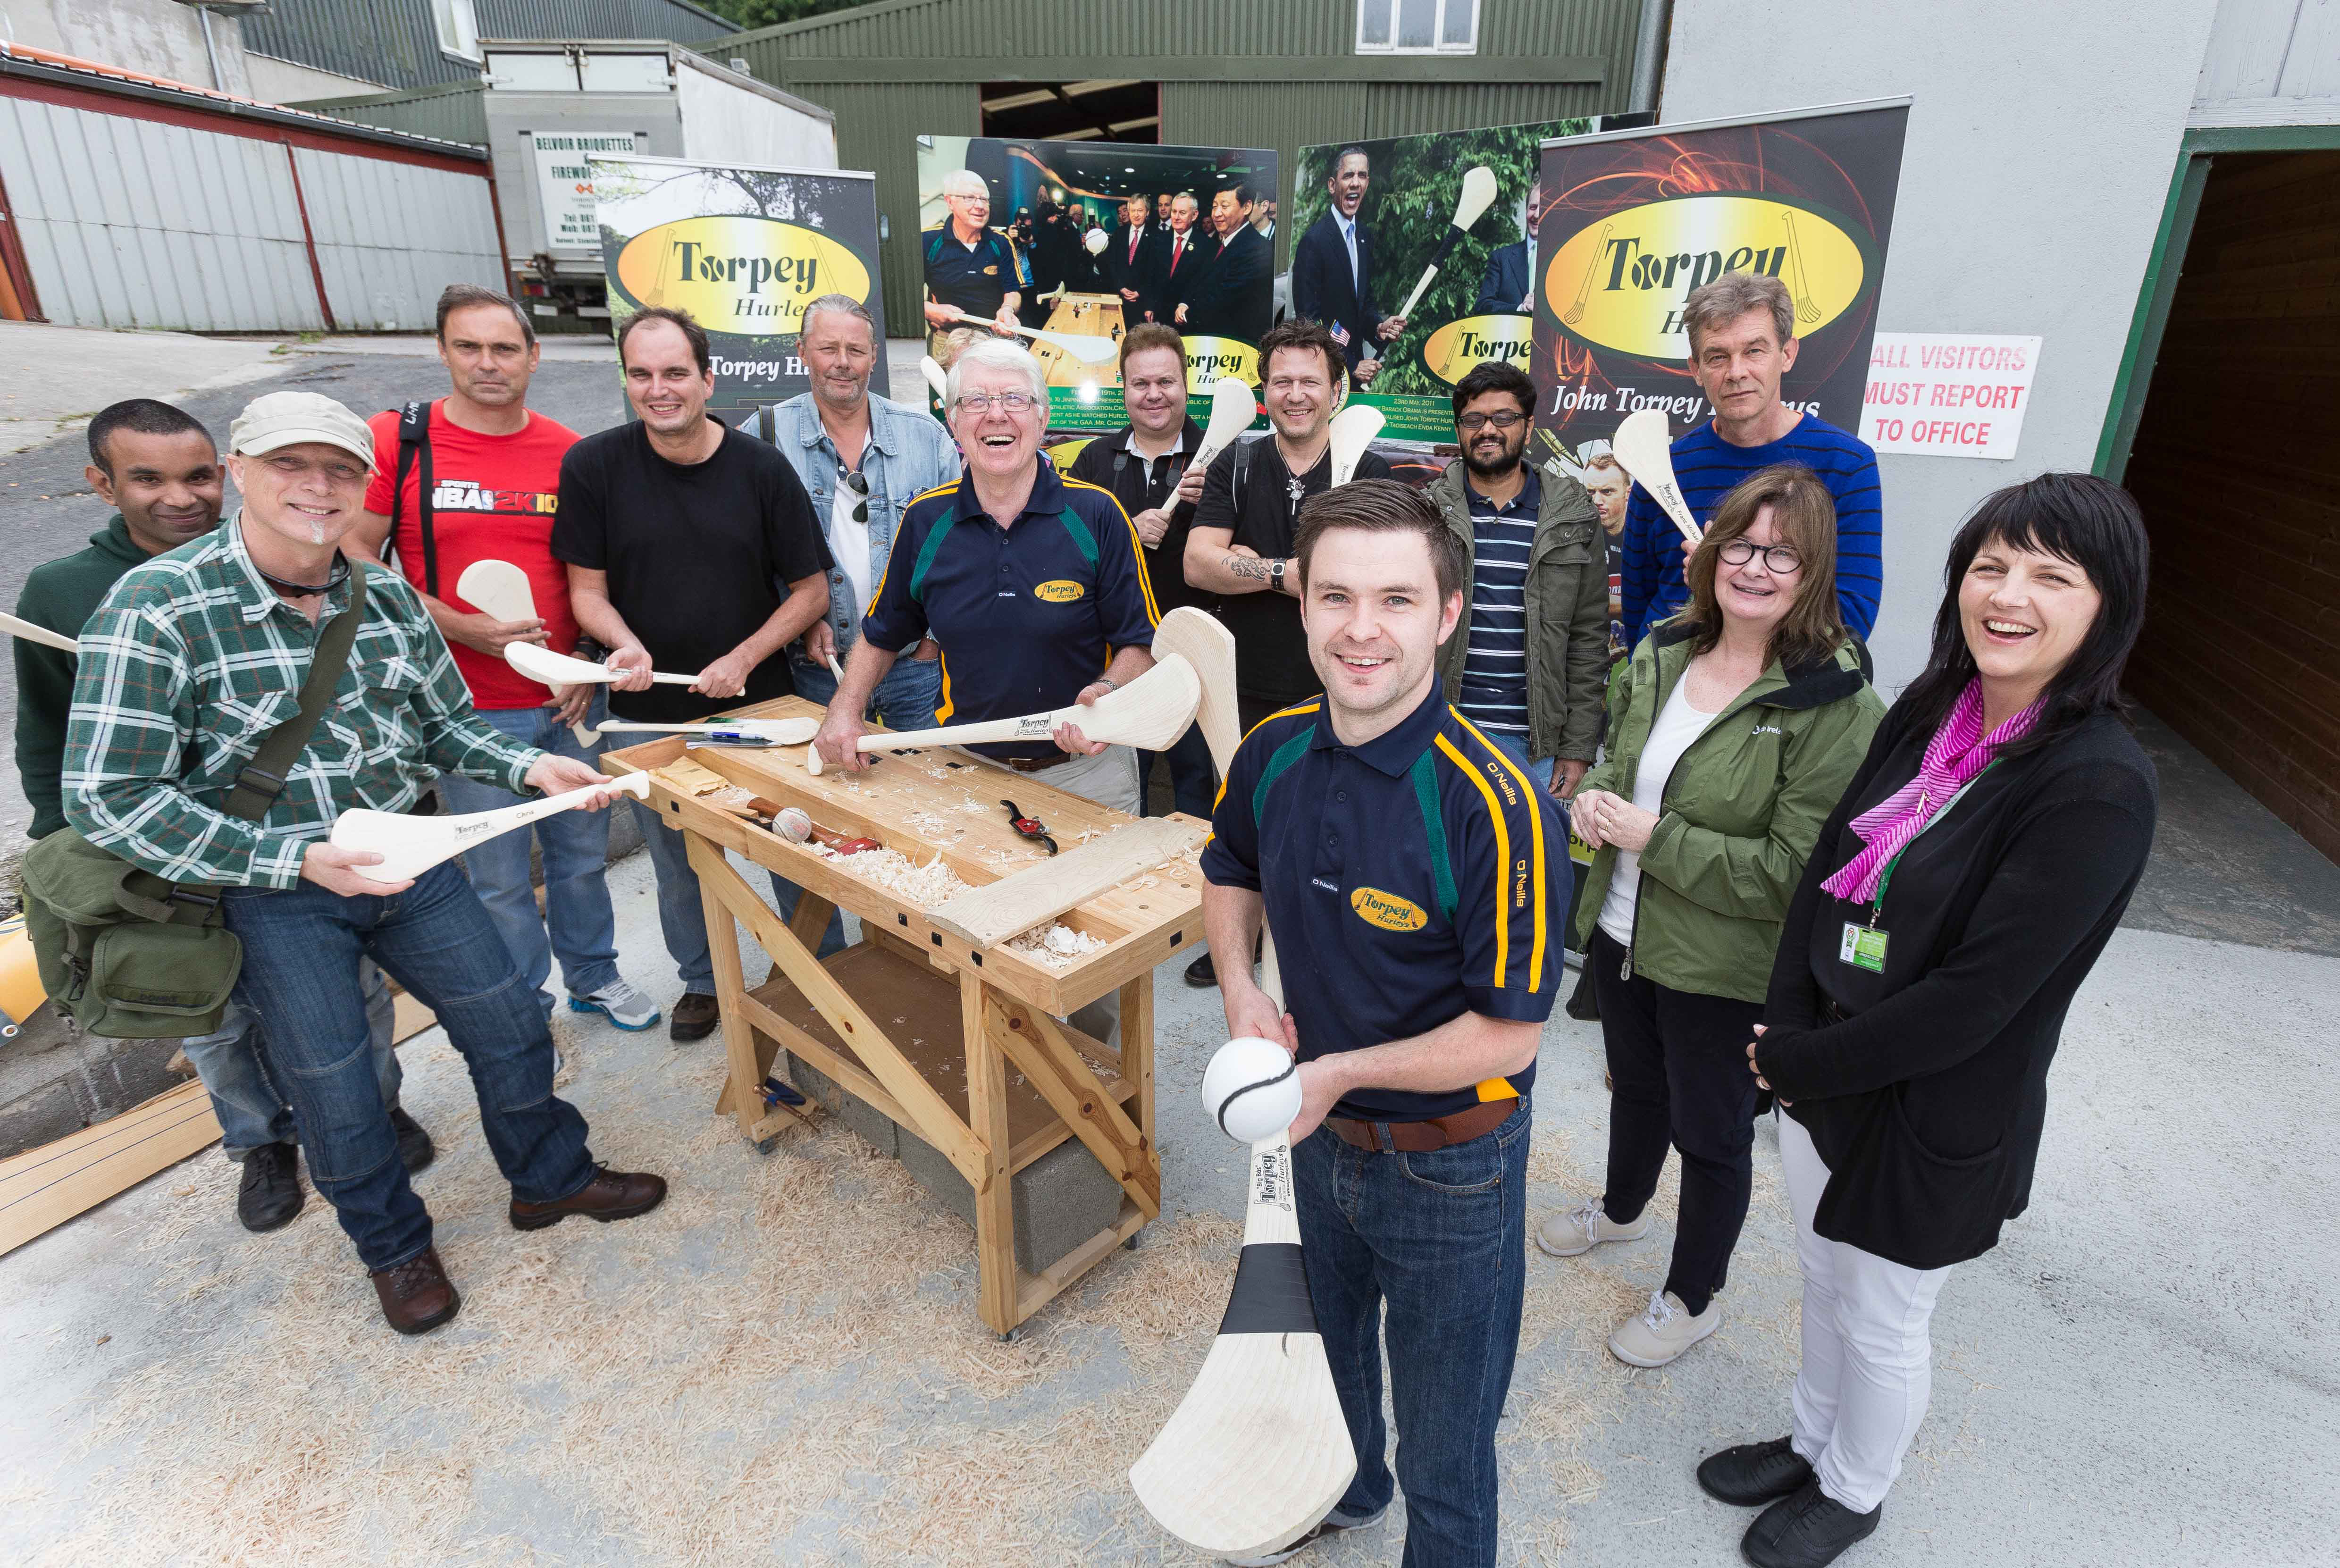 John and Seán Torpey show international travel writers how hurleys are made, at Torpey Hurleys, Sixmilebridge, Co Clare; also pictured are Brenda King, Fáilte Ireland (second right), and tour guide Tanya Jordan (right). Pic – Eamon Ward